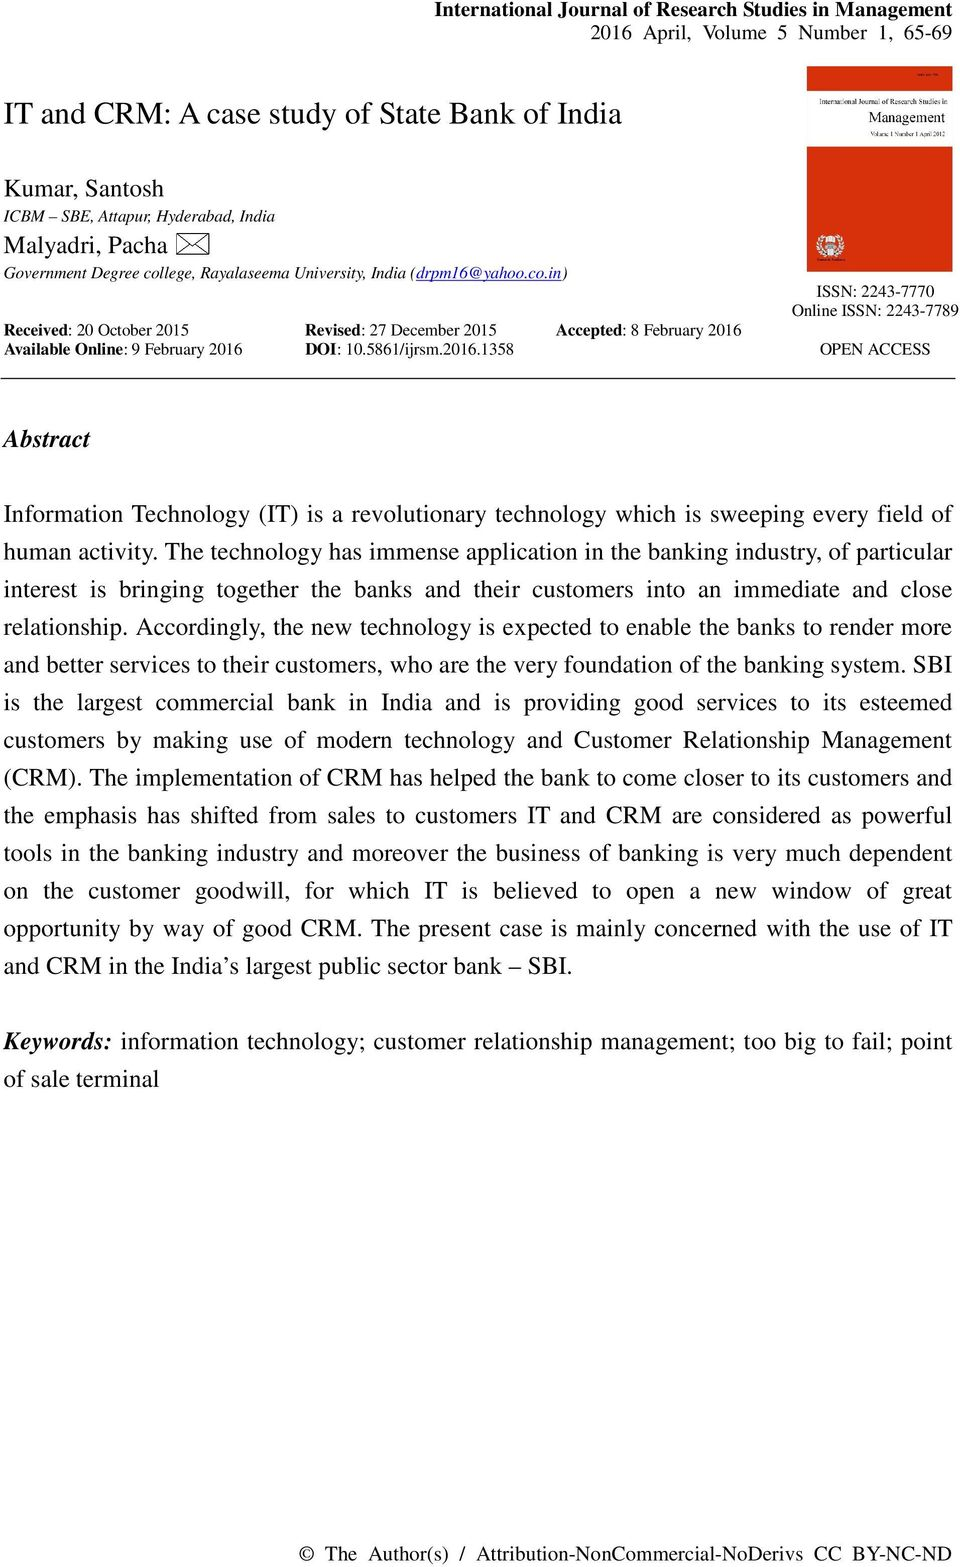 5861/ijrsm.2016.1358 ISSN: 2243-7770 Online ISSN: 2243-7789 OPEN ACCESS Abstract Information Technology (IT) is a revolutionary technology which is sweeping every field of human activity.